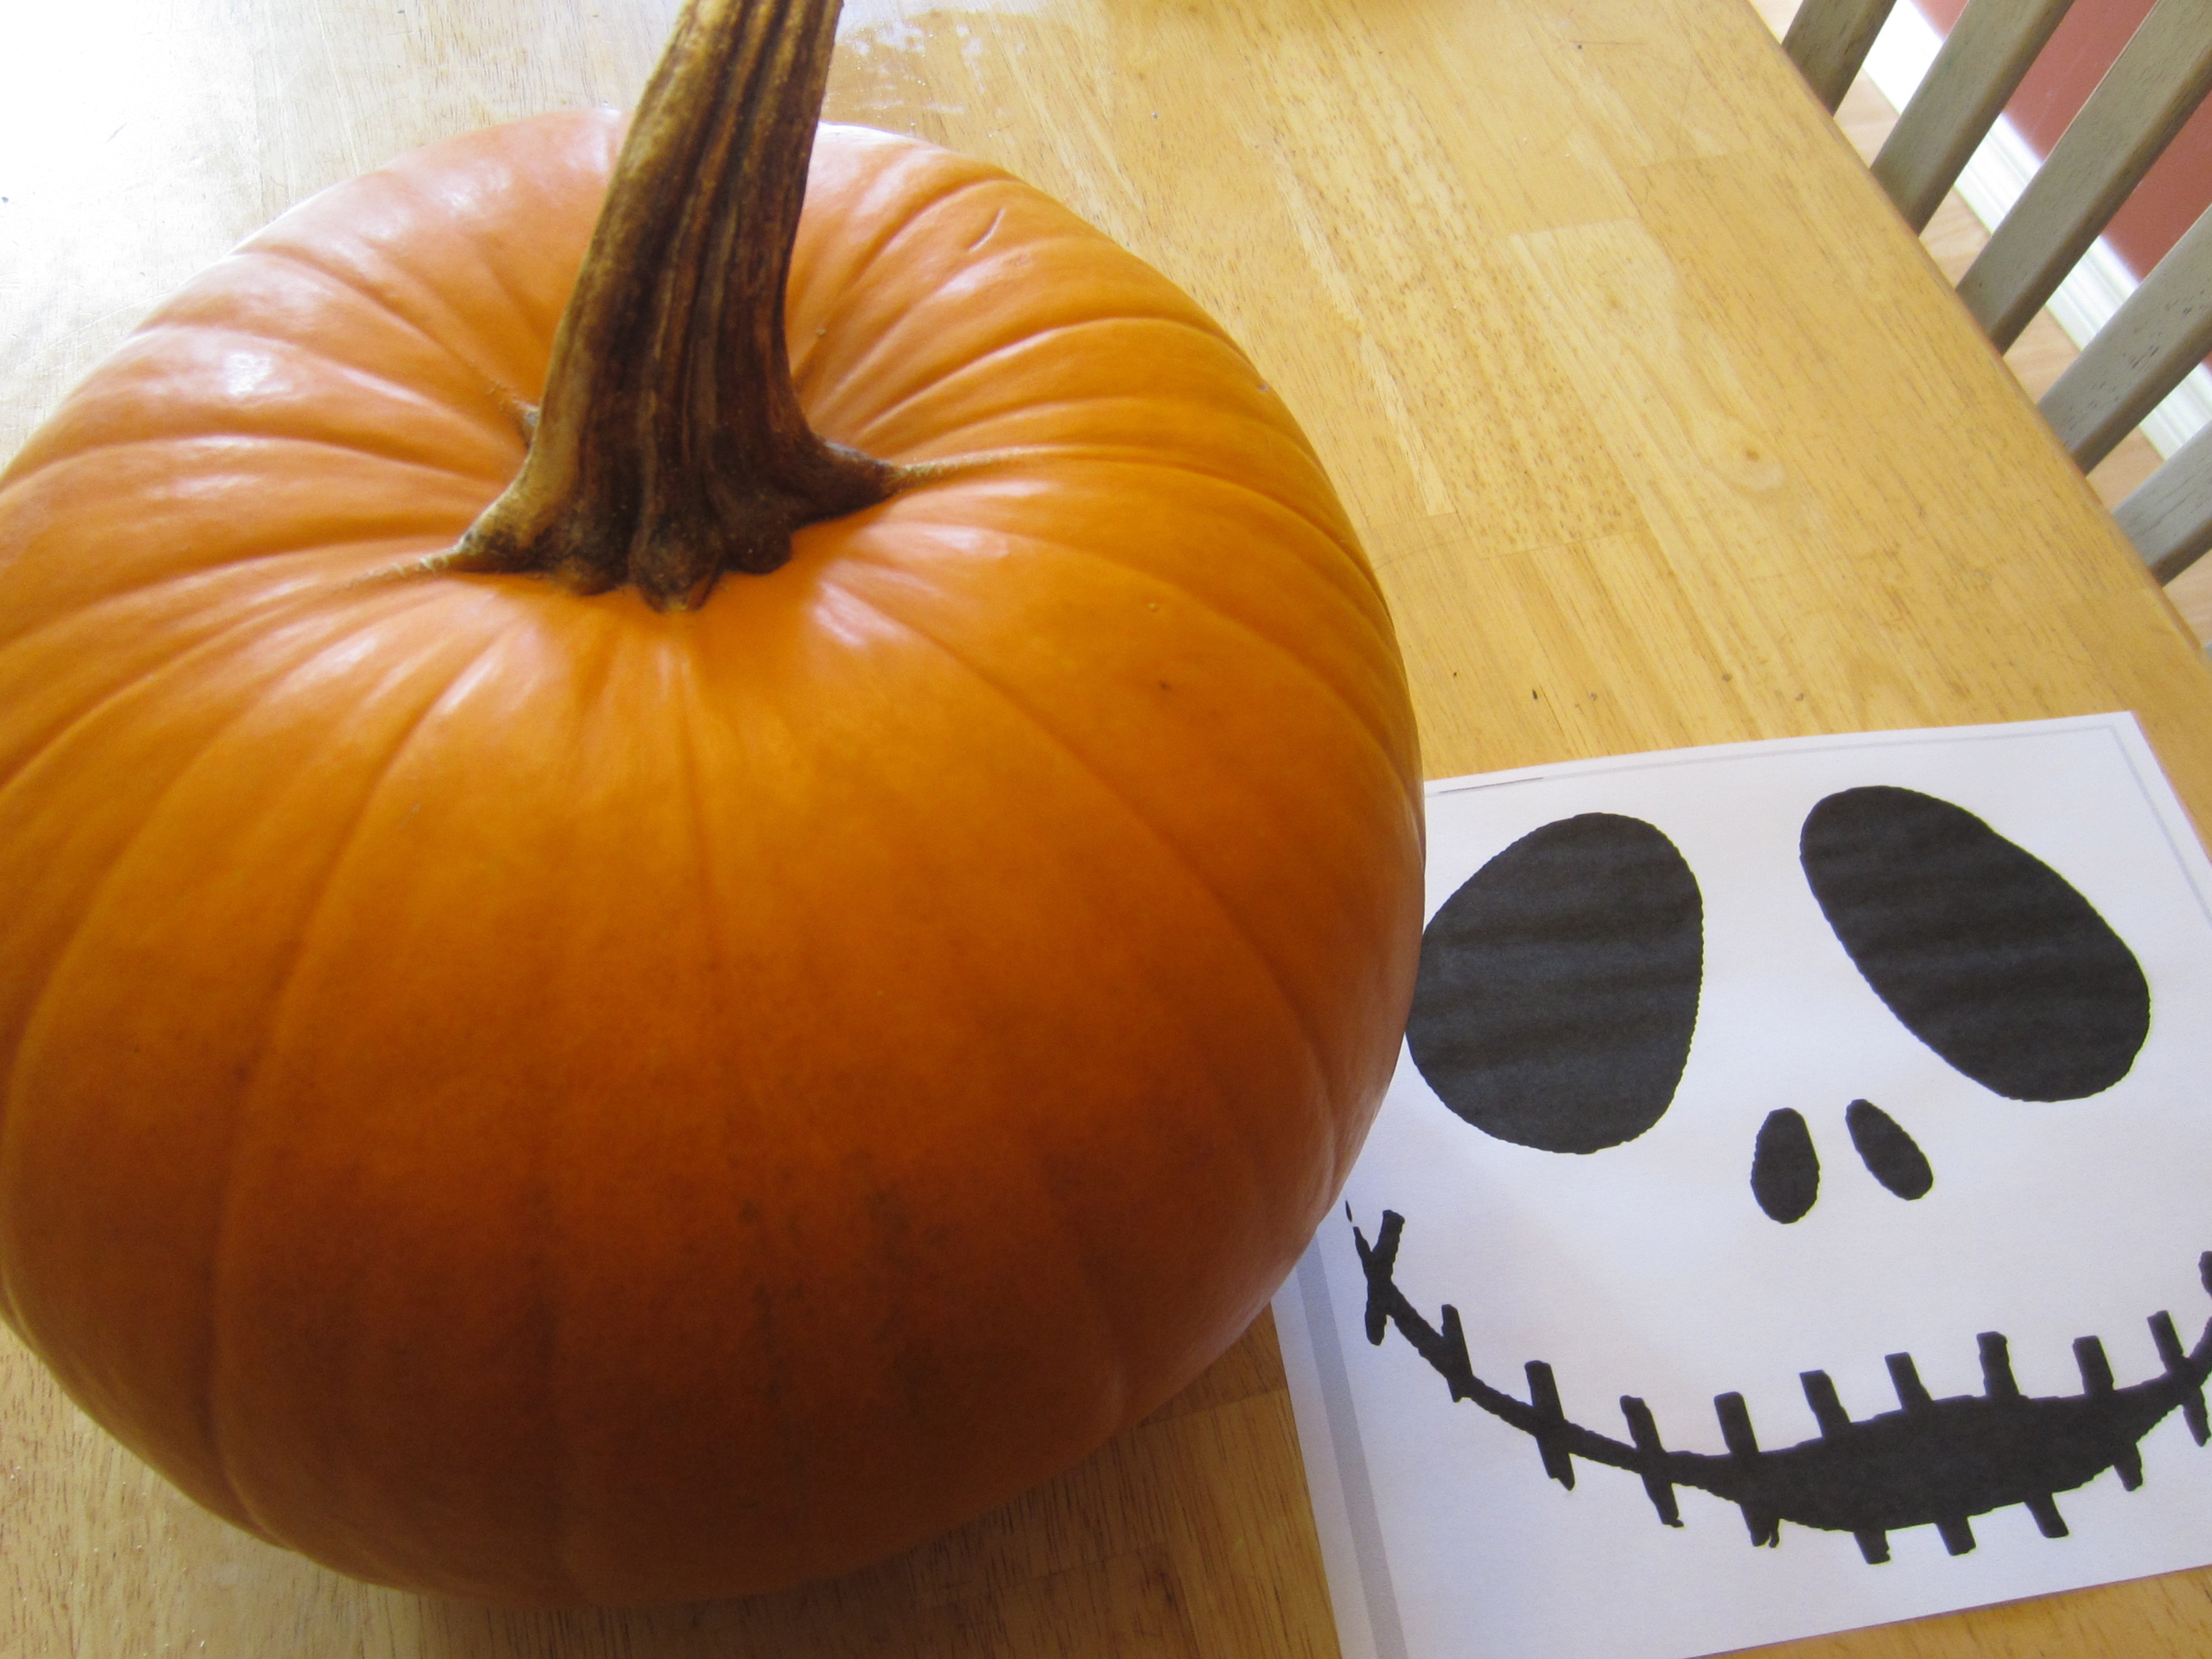 Piquant It Was Only Fitting To Carve A Pumpkin Four Little Pumpkins Busted Button Jack Skellington Pumpkin Carving Step By Step Jack Skellington Pumpkin Carving Face nice food Jack Skellington Pumpkin Carving